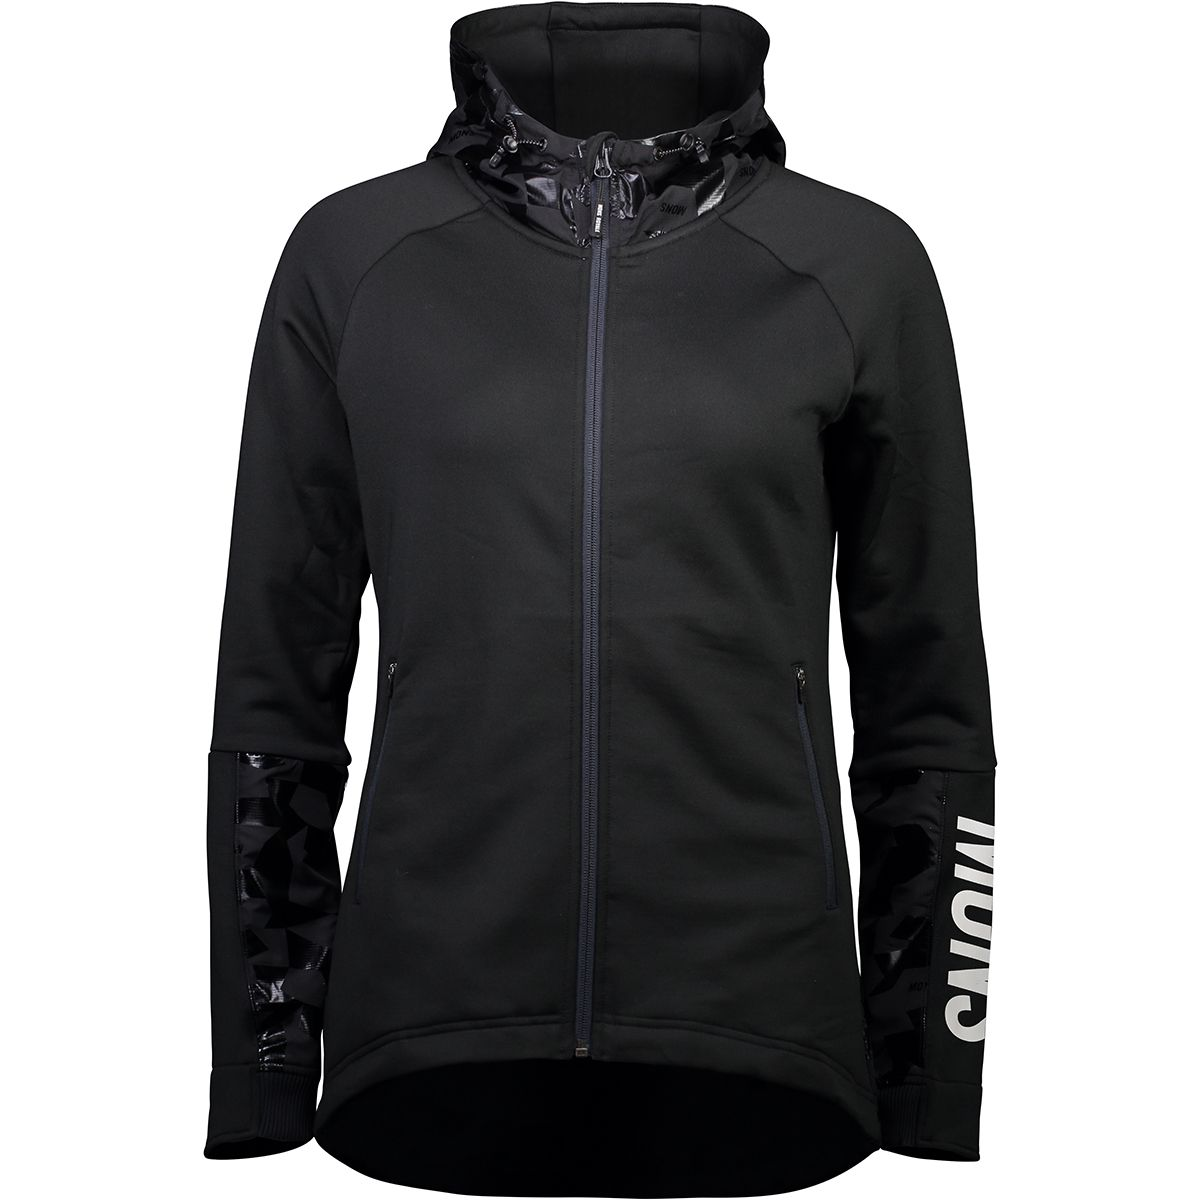 Mons Royale Damen Decade Tech Mid Hooded Jacke (Größe XS, Schwarz) | Fleecejacken > Damen